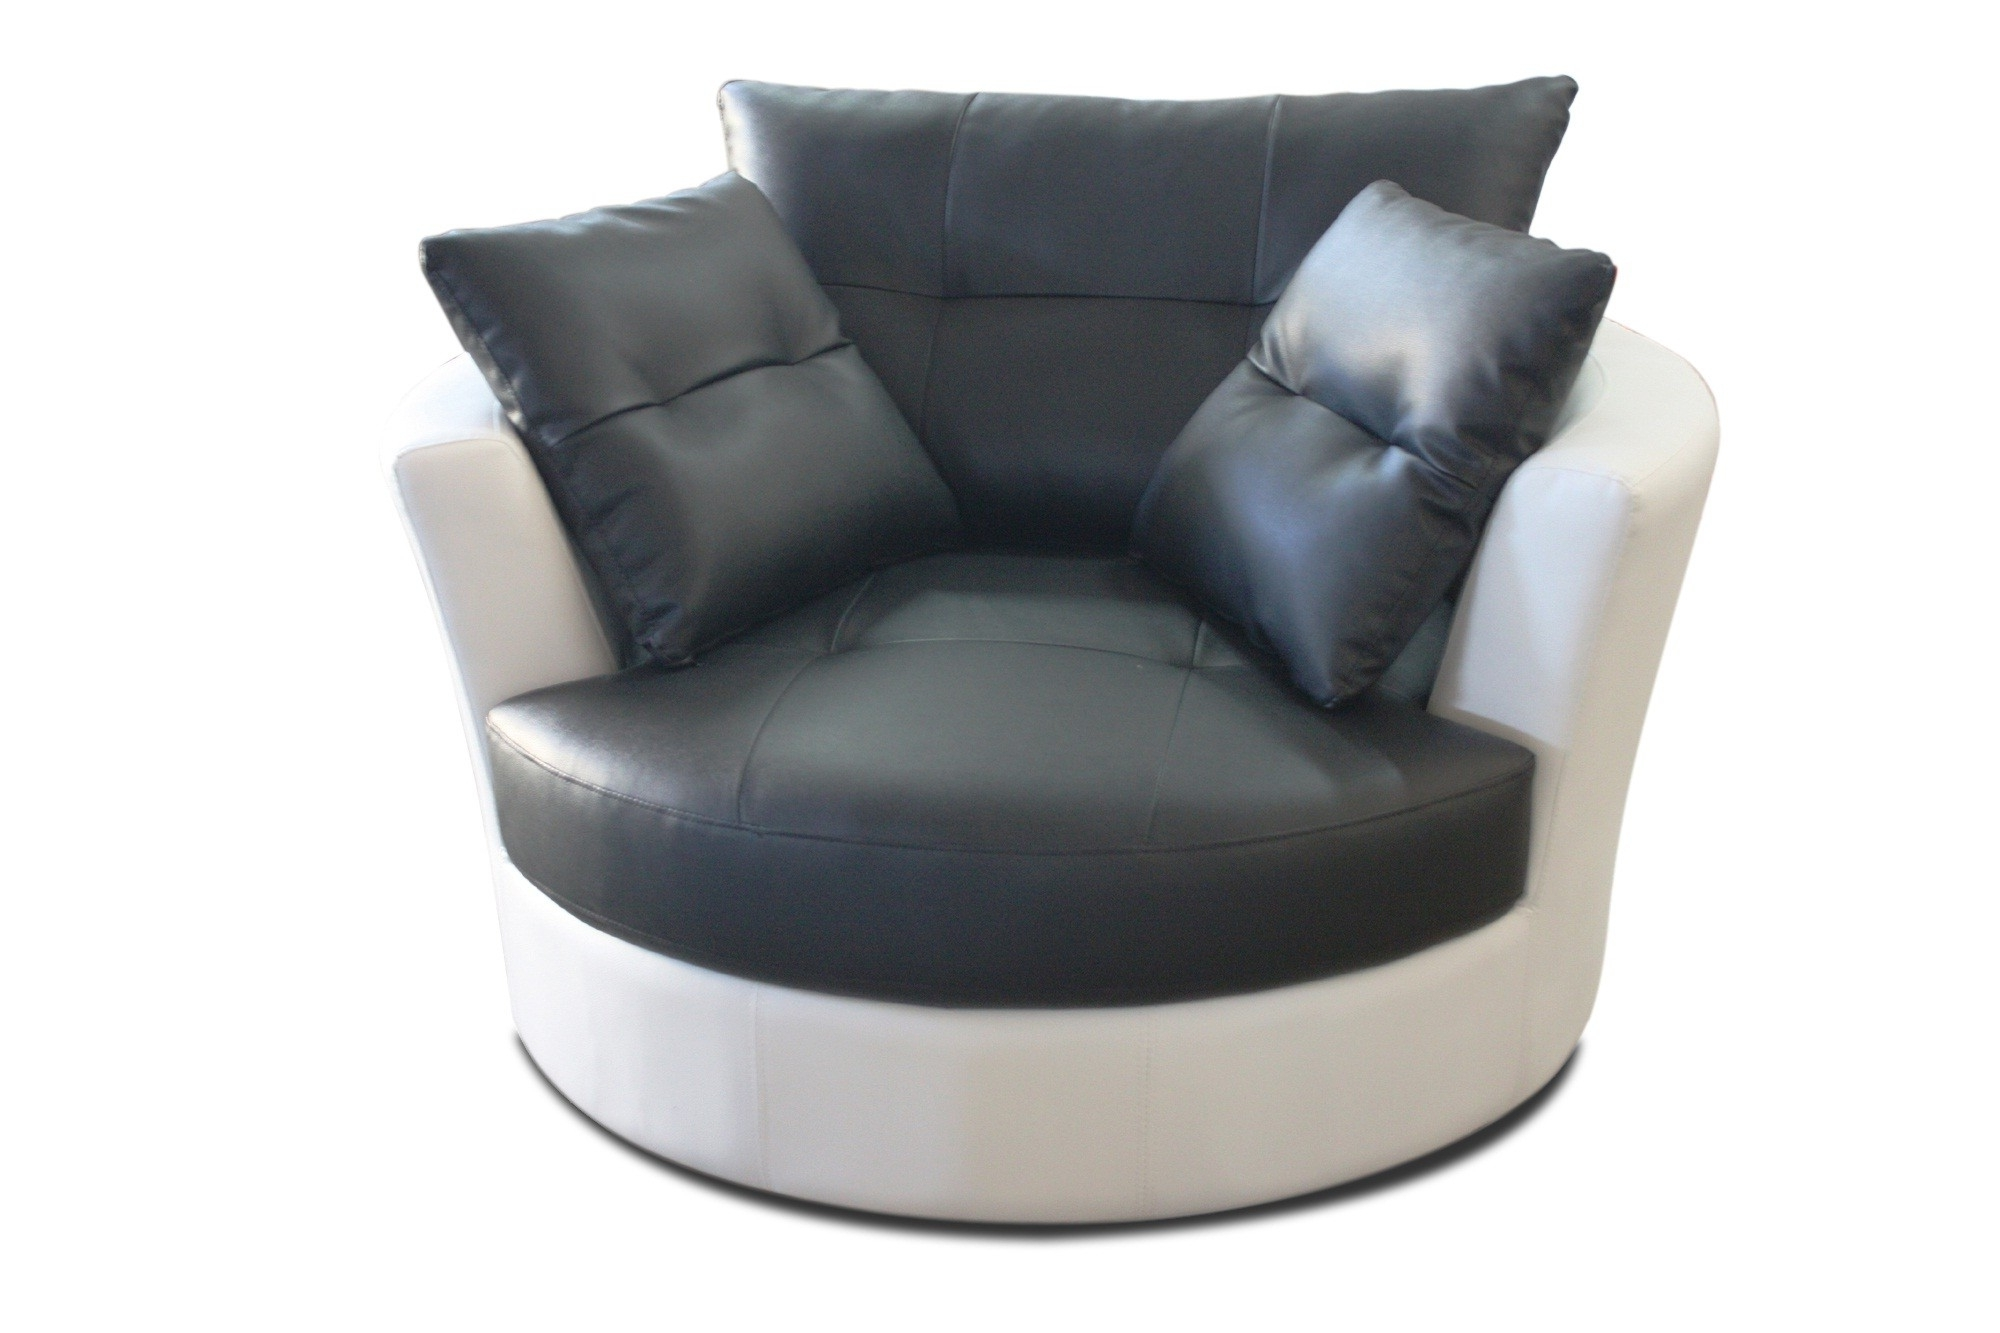 Most Current Fresh Swivel Sofa Chair 55 For Sofas And Couches Ideas With Swivel Pertaining To Round Swivel Sofa Chairs (View 12 of 15)